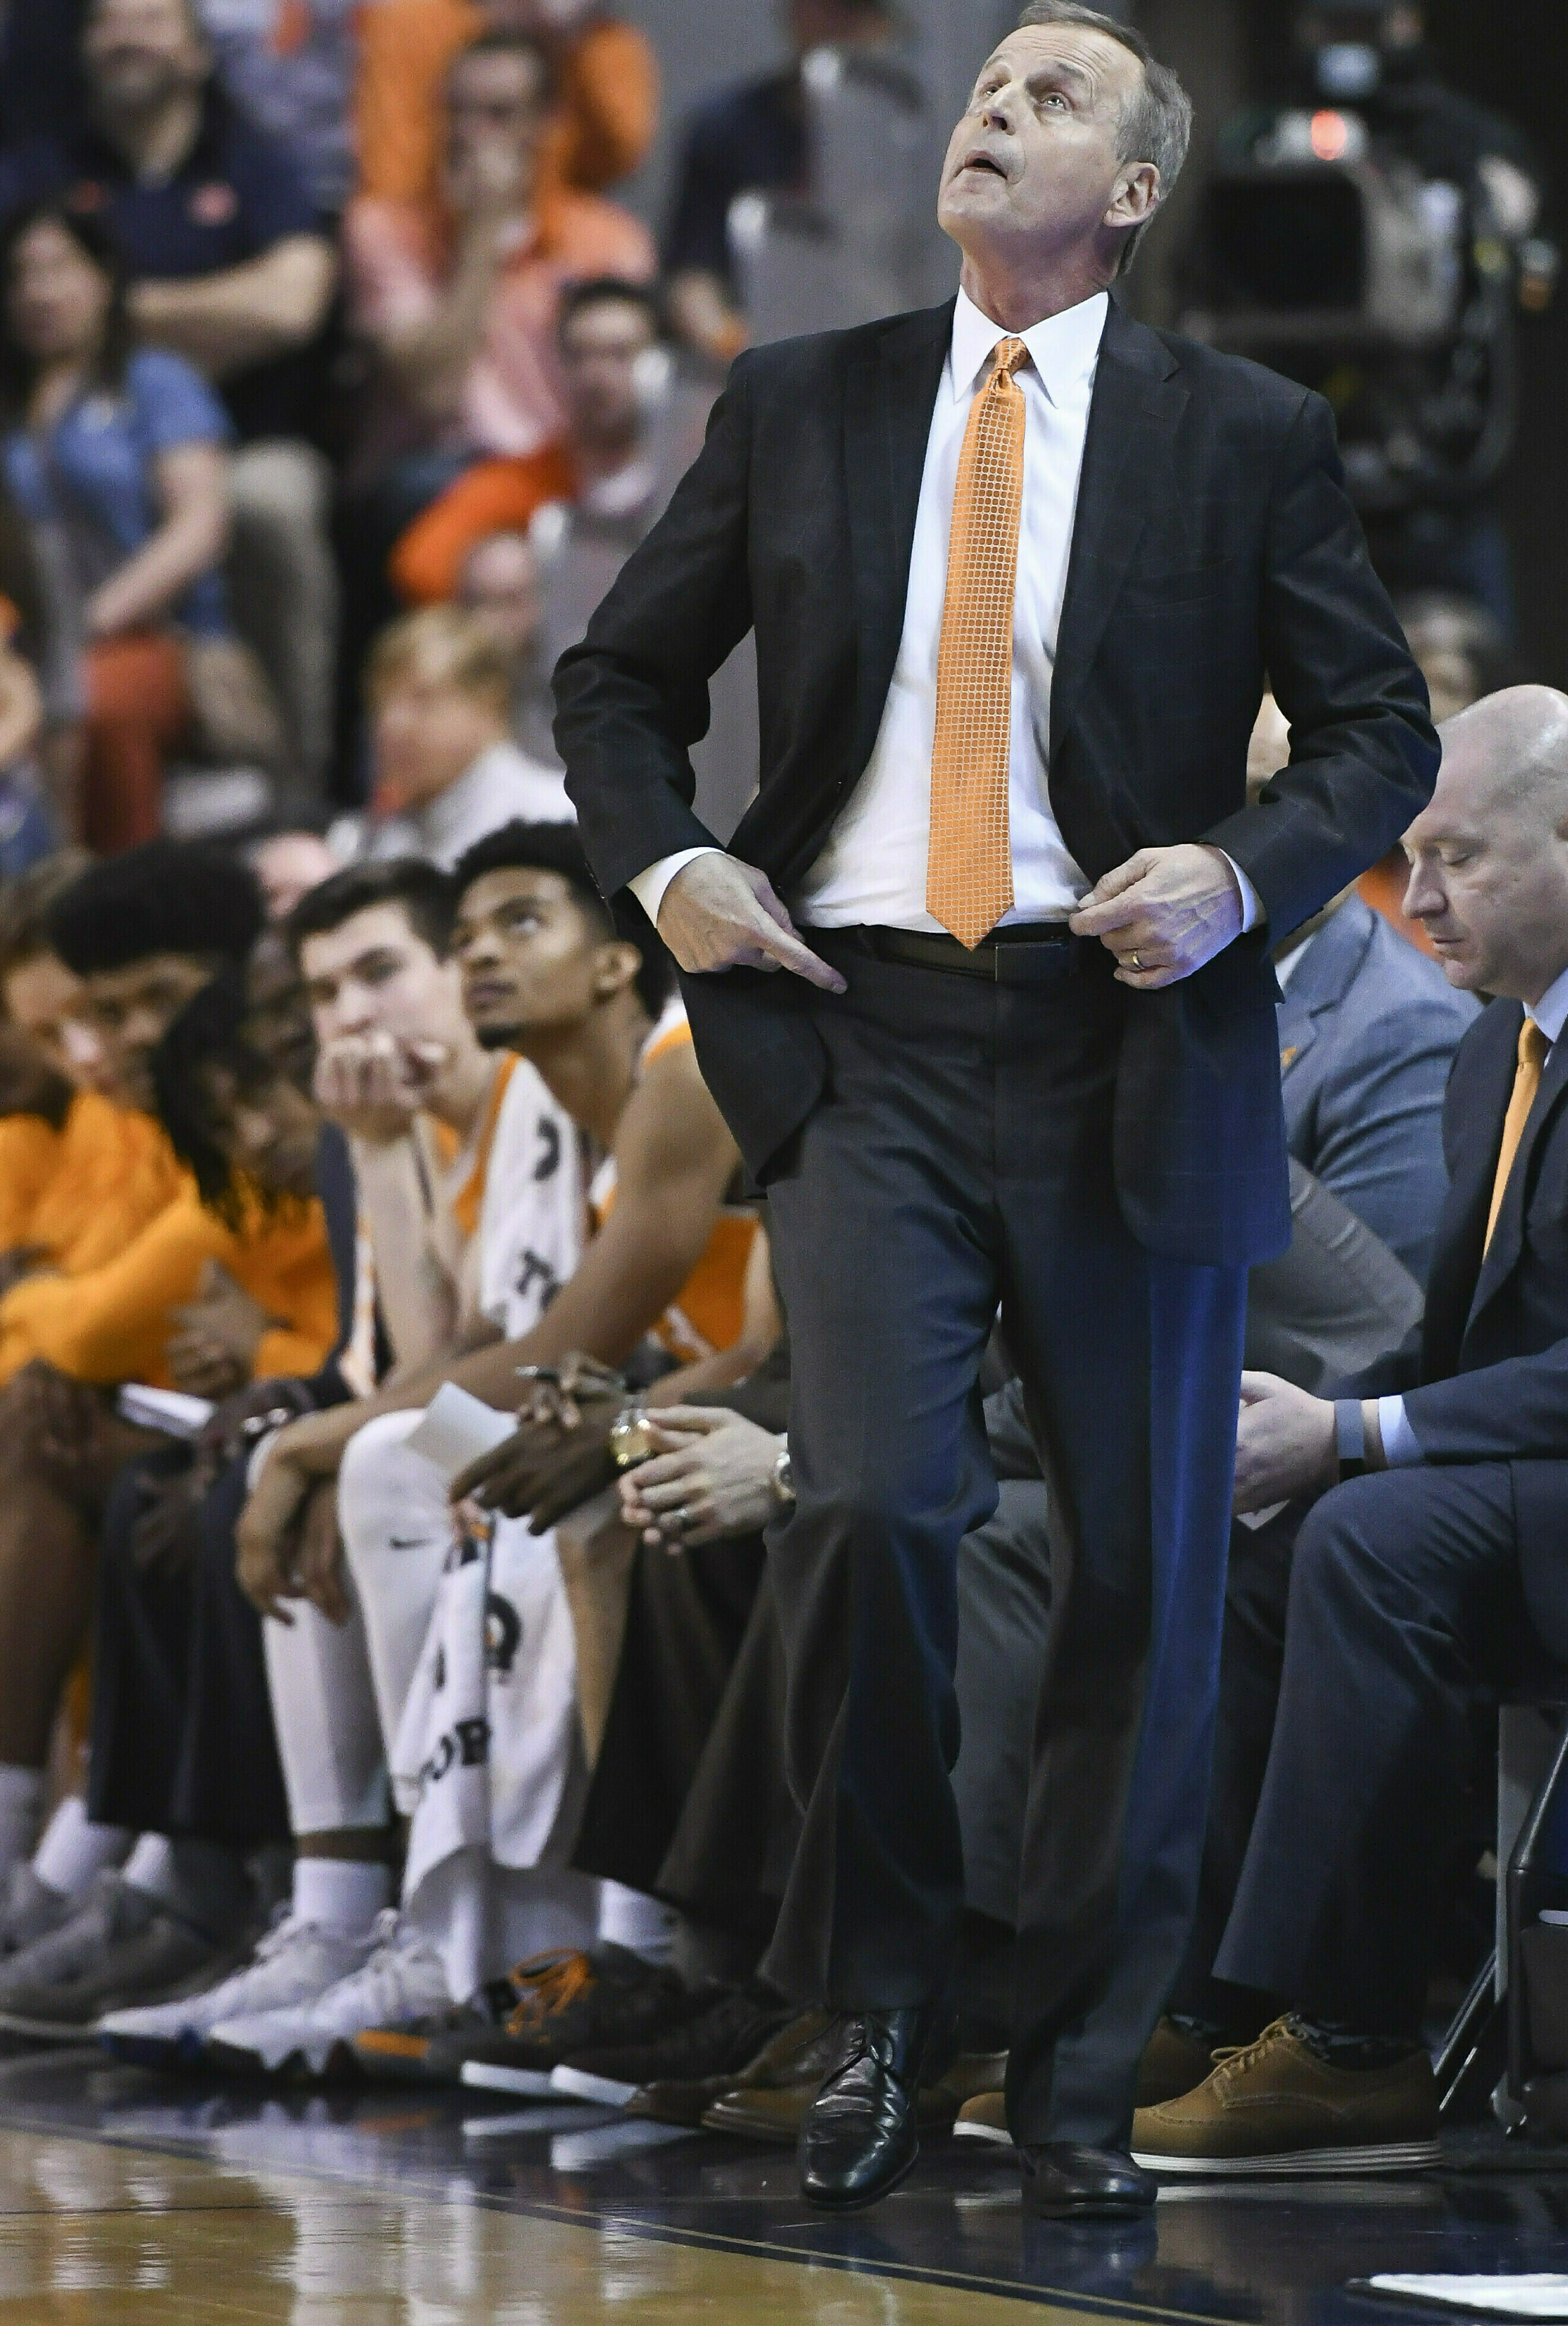 Tennessee head coach Rick Barnes watches a replay on the Jumbotron during the second half of an NCAA college basketball game against Auburn Saturday, March 9, 2019, in Auburn, Ala. (AP Photo/Julie Bennett)